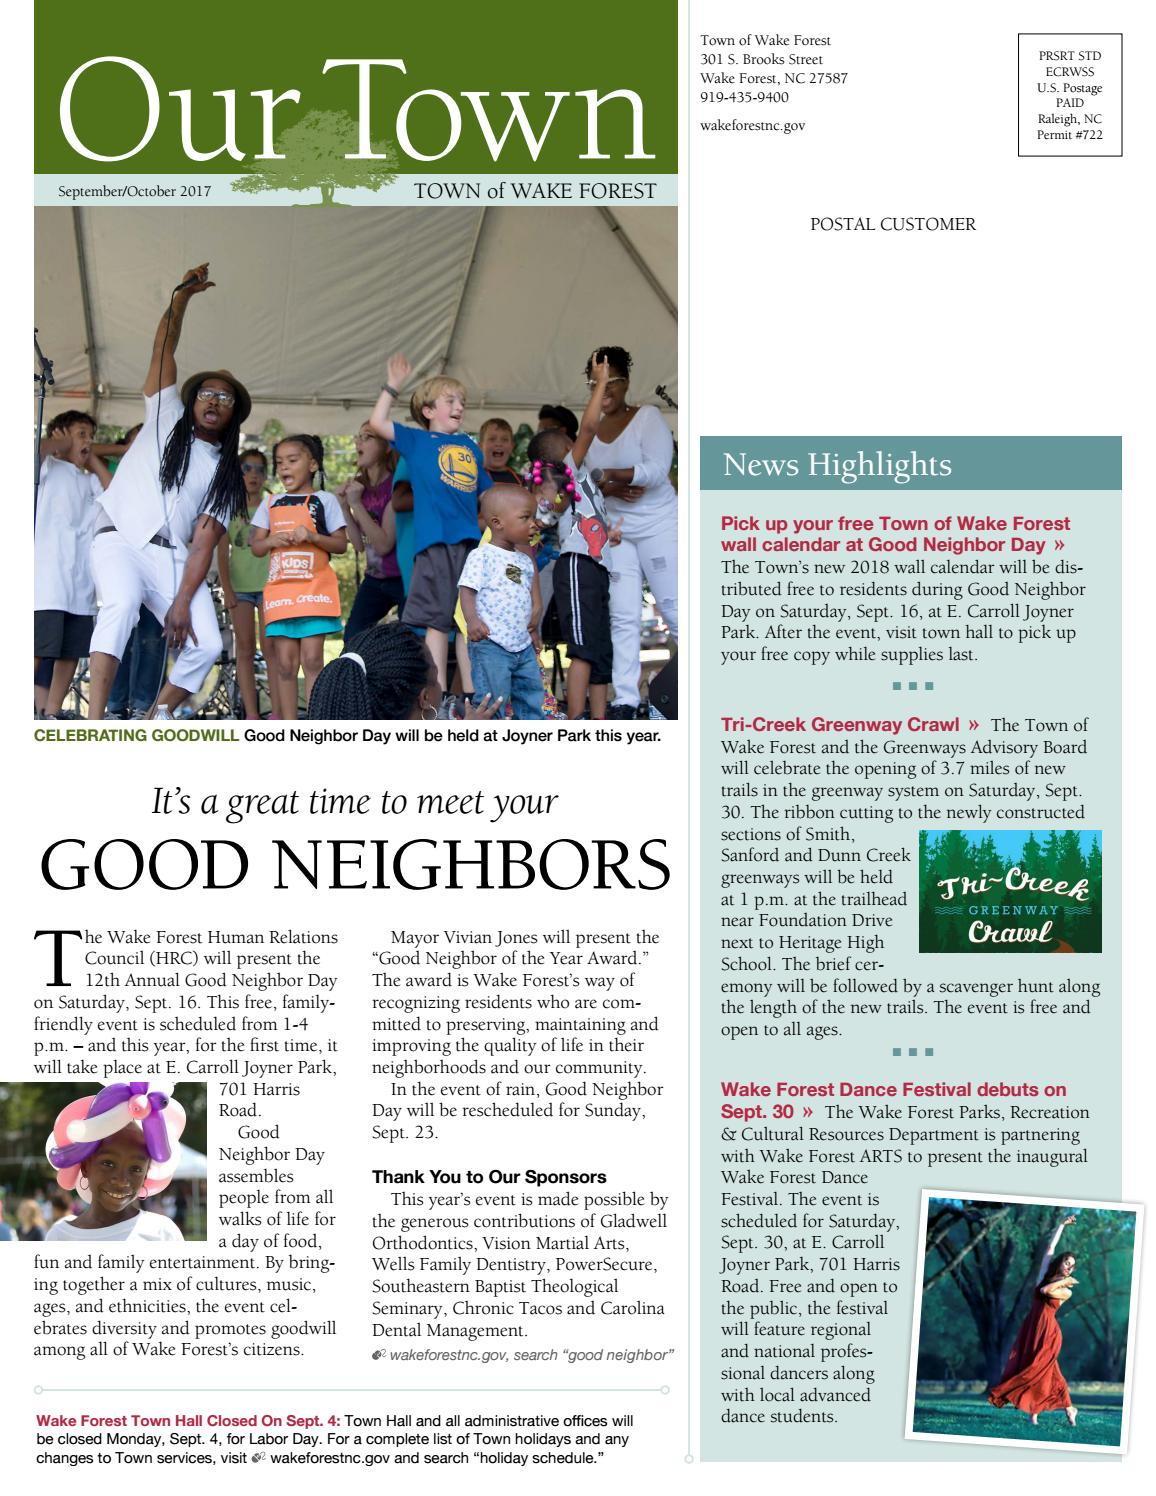 Our Town: Sept/Oct 2017 by Town of Wake Forest - issuu